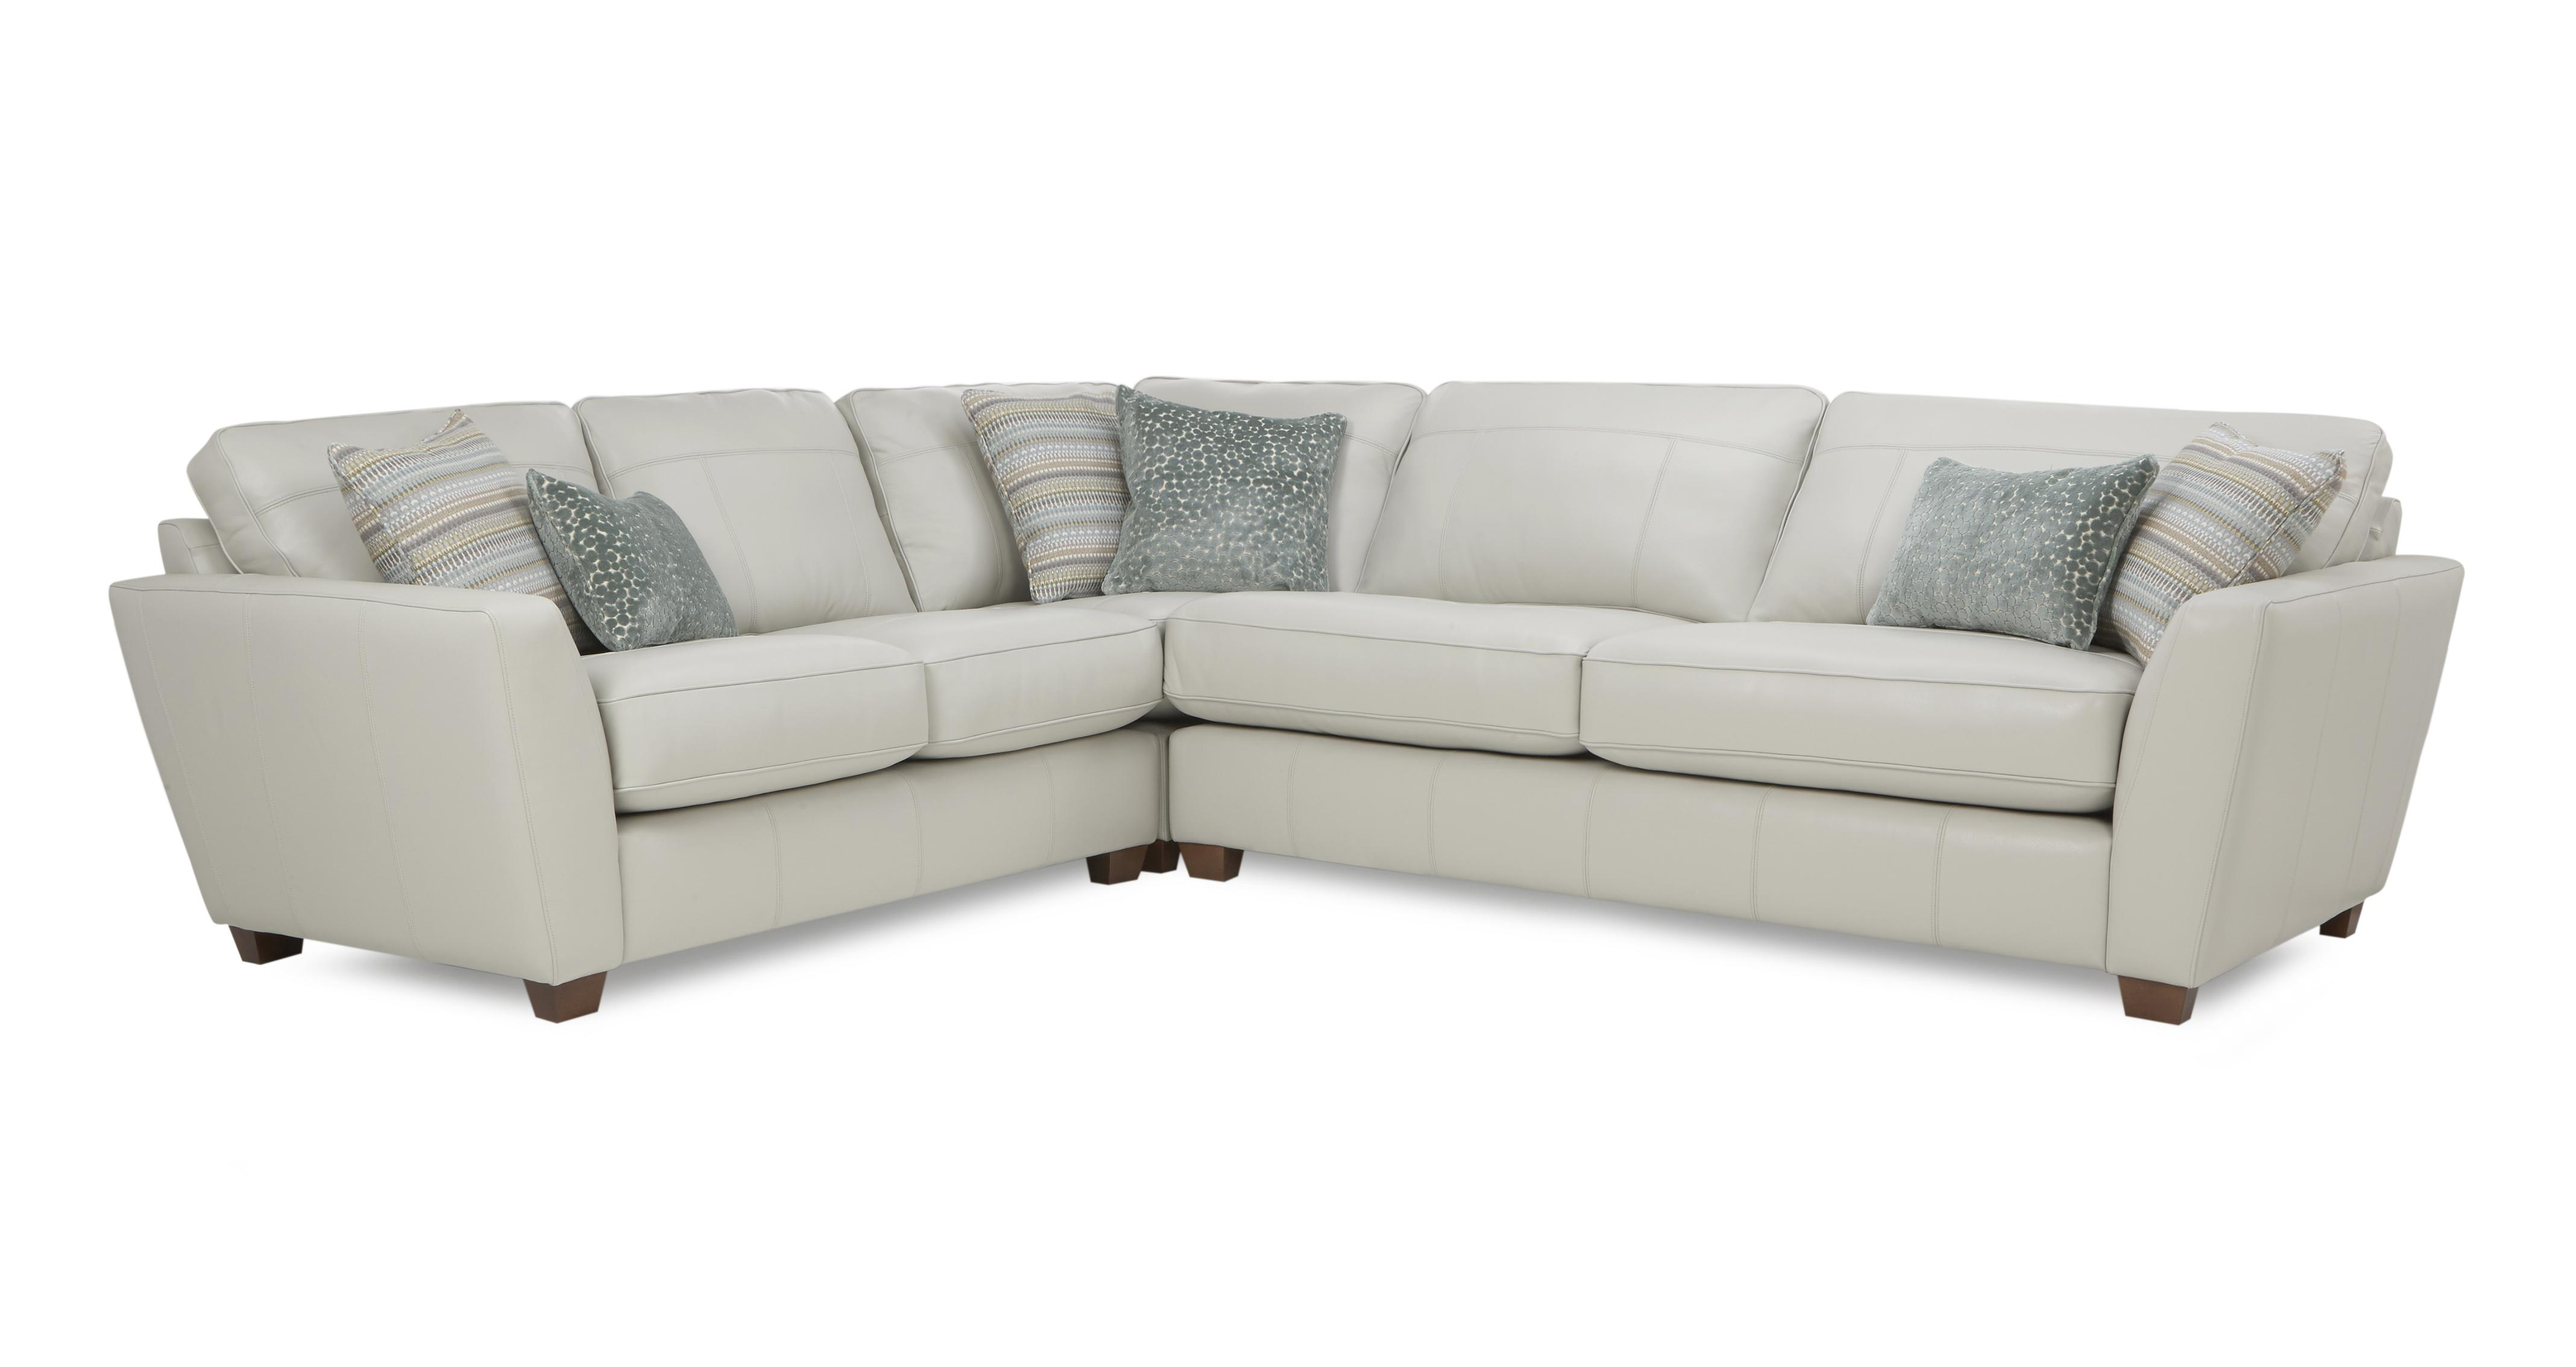 Sophia Leather Right Hand Facing 3 Seater Corner Group DFS